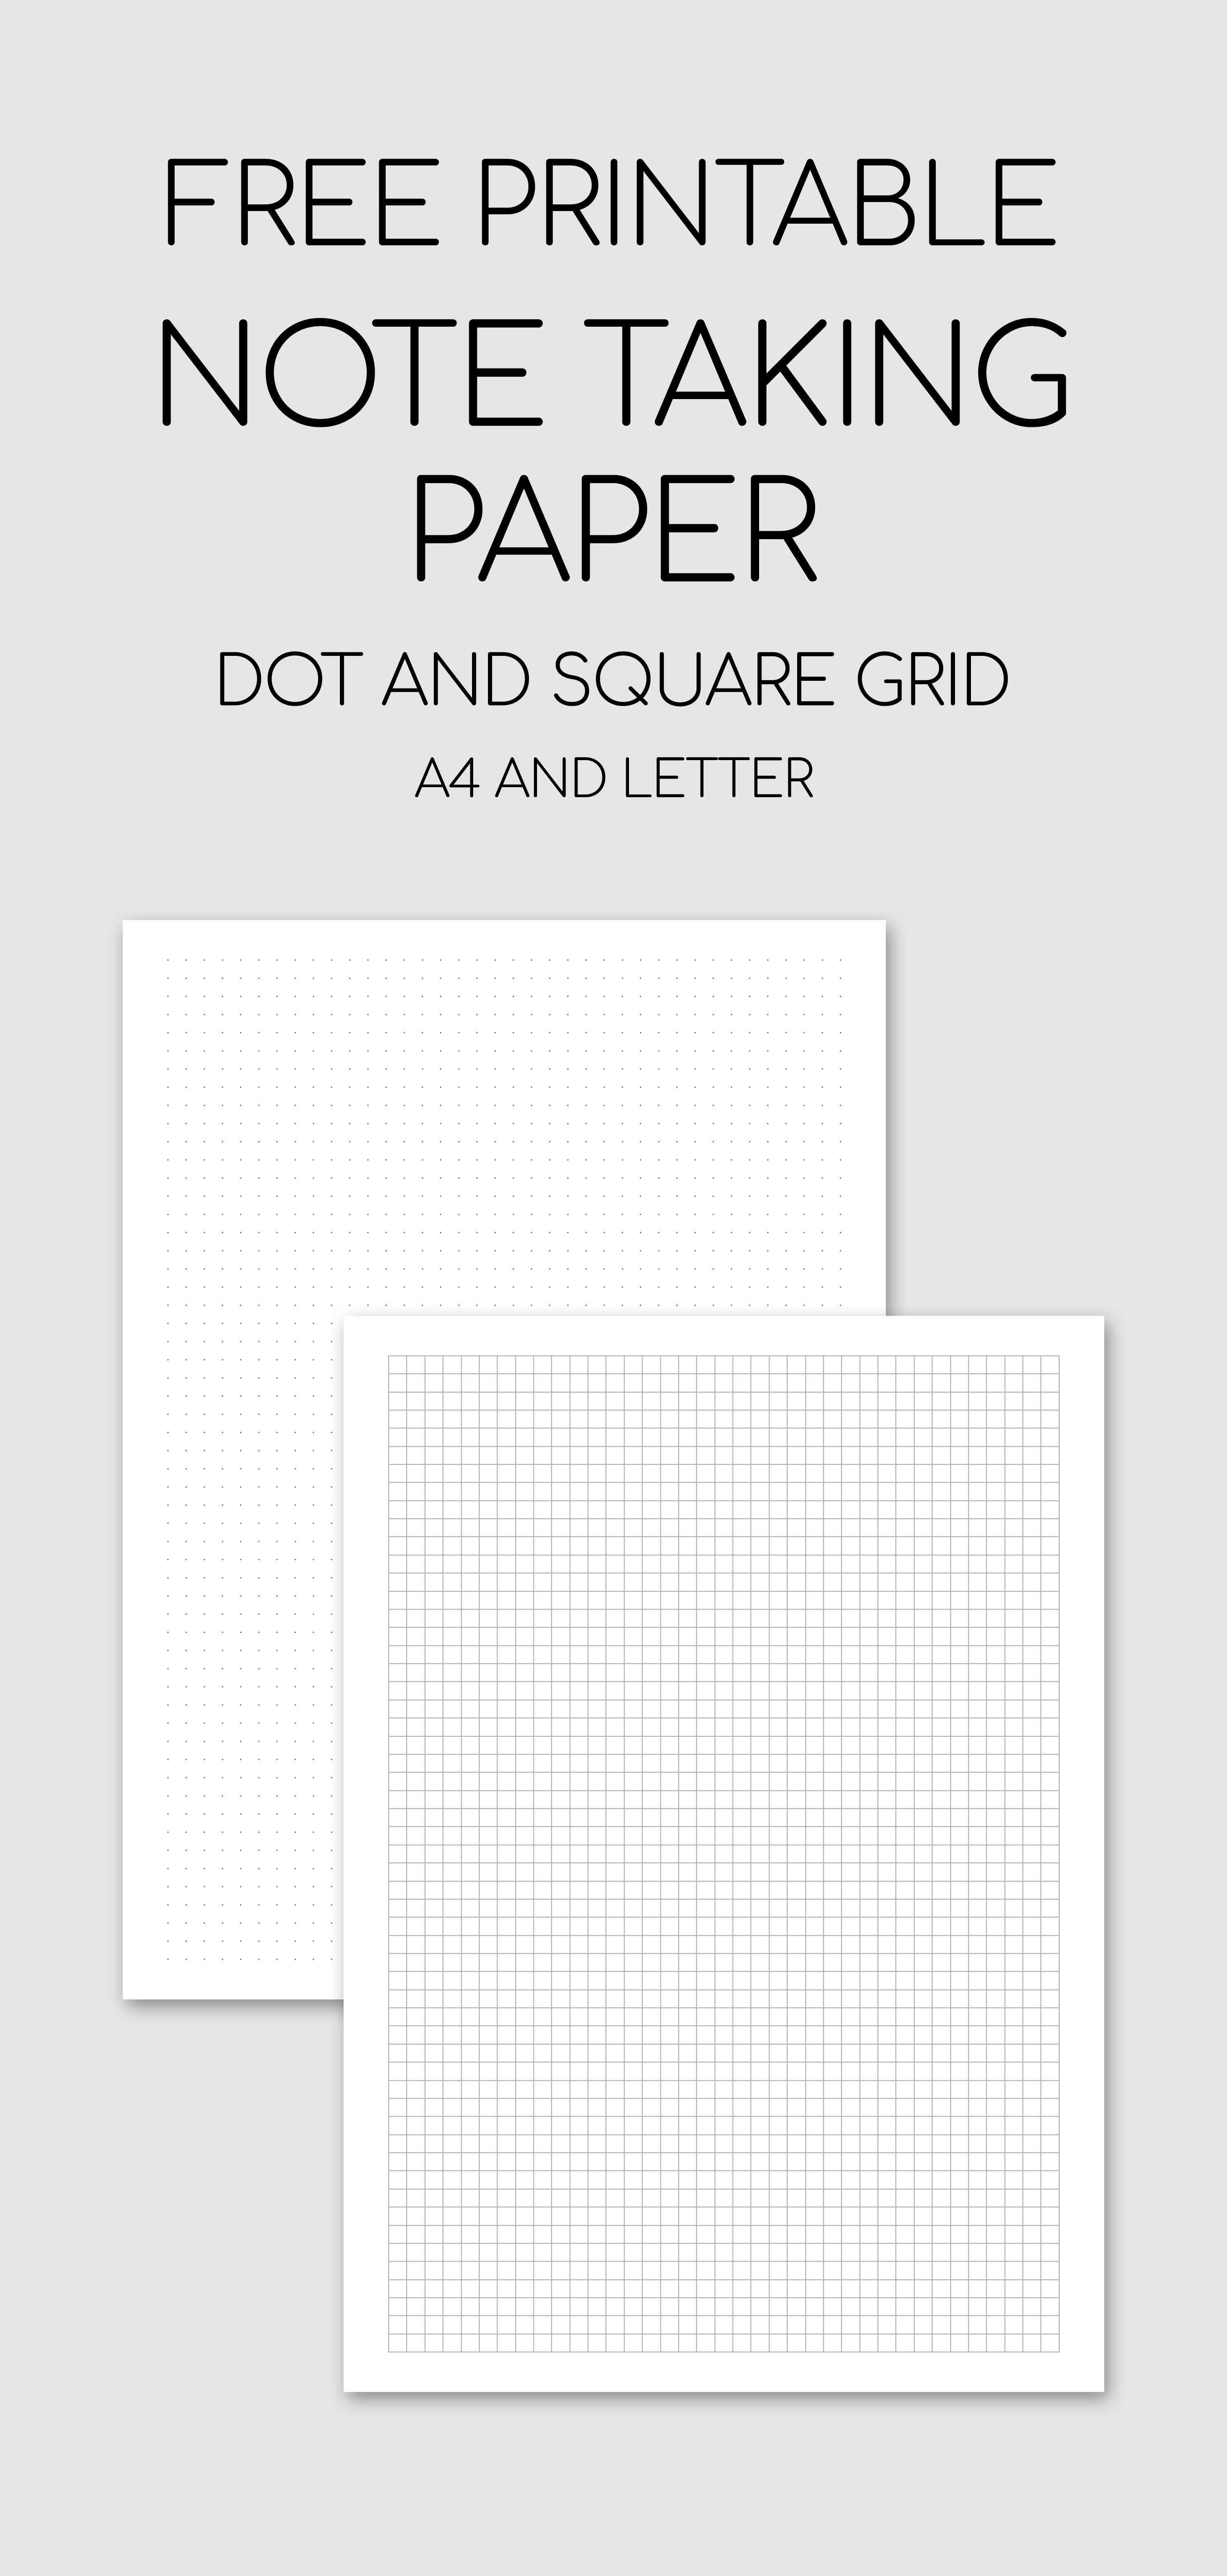 image about Free Printable Dot Grid Paper referred to as Free of charge Printable Take note Getting Paper - Dot And Sq. Grid #absolutely free